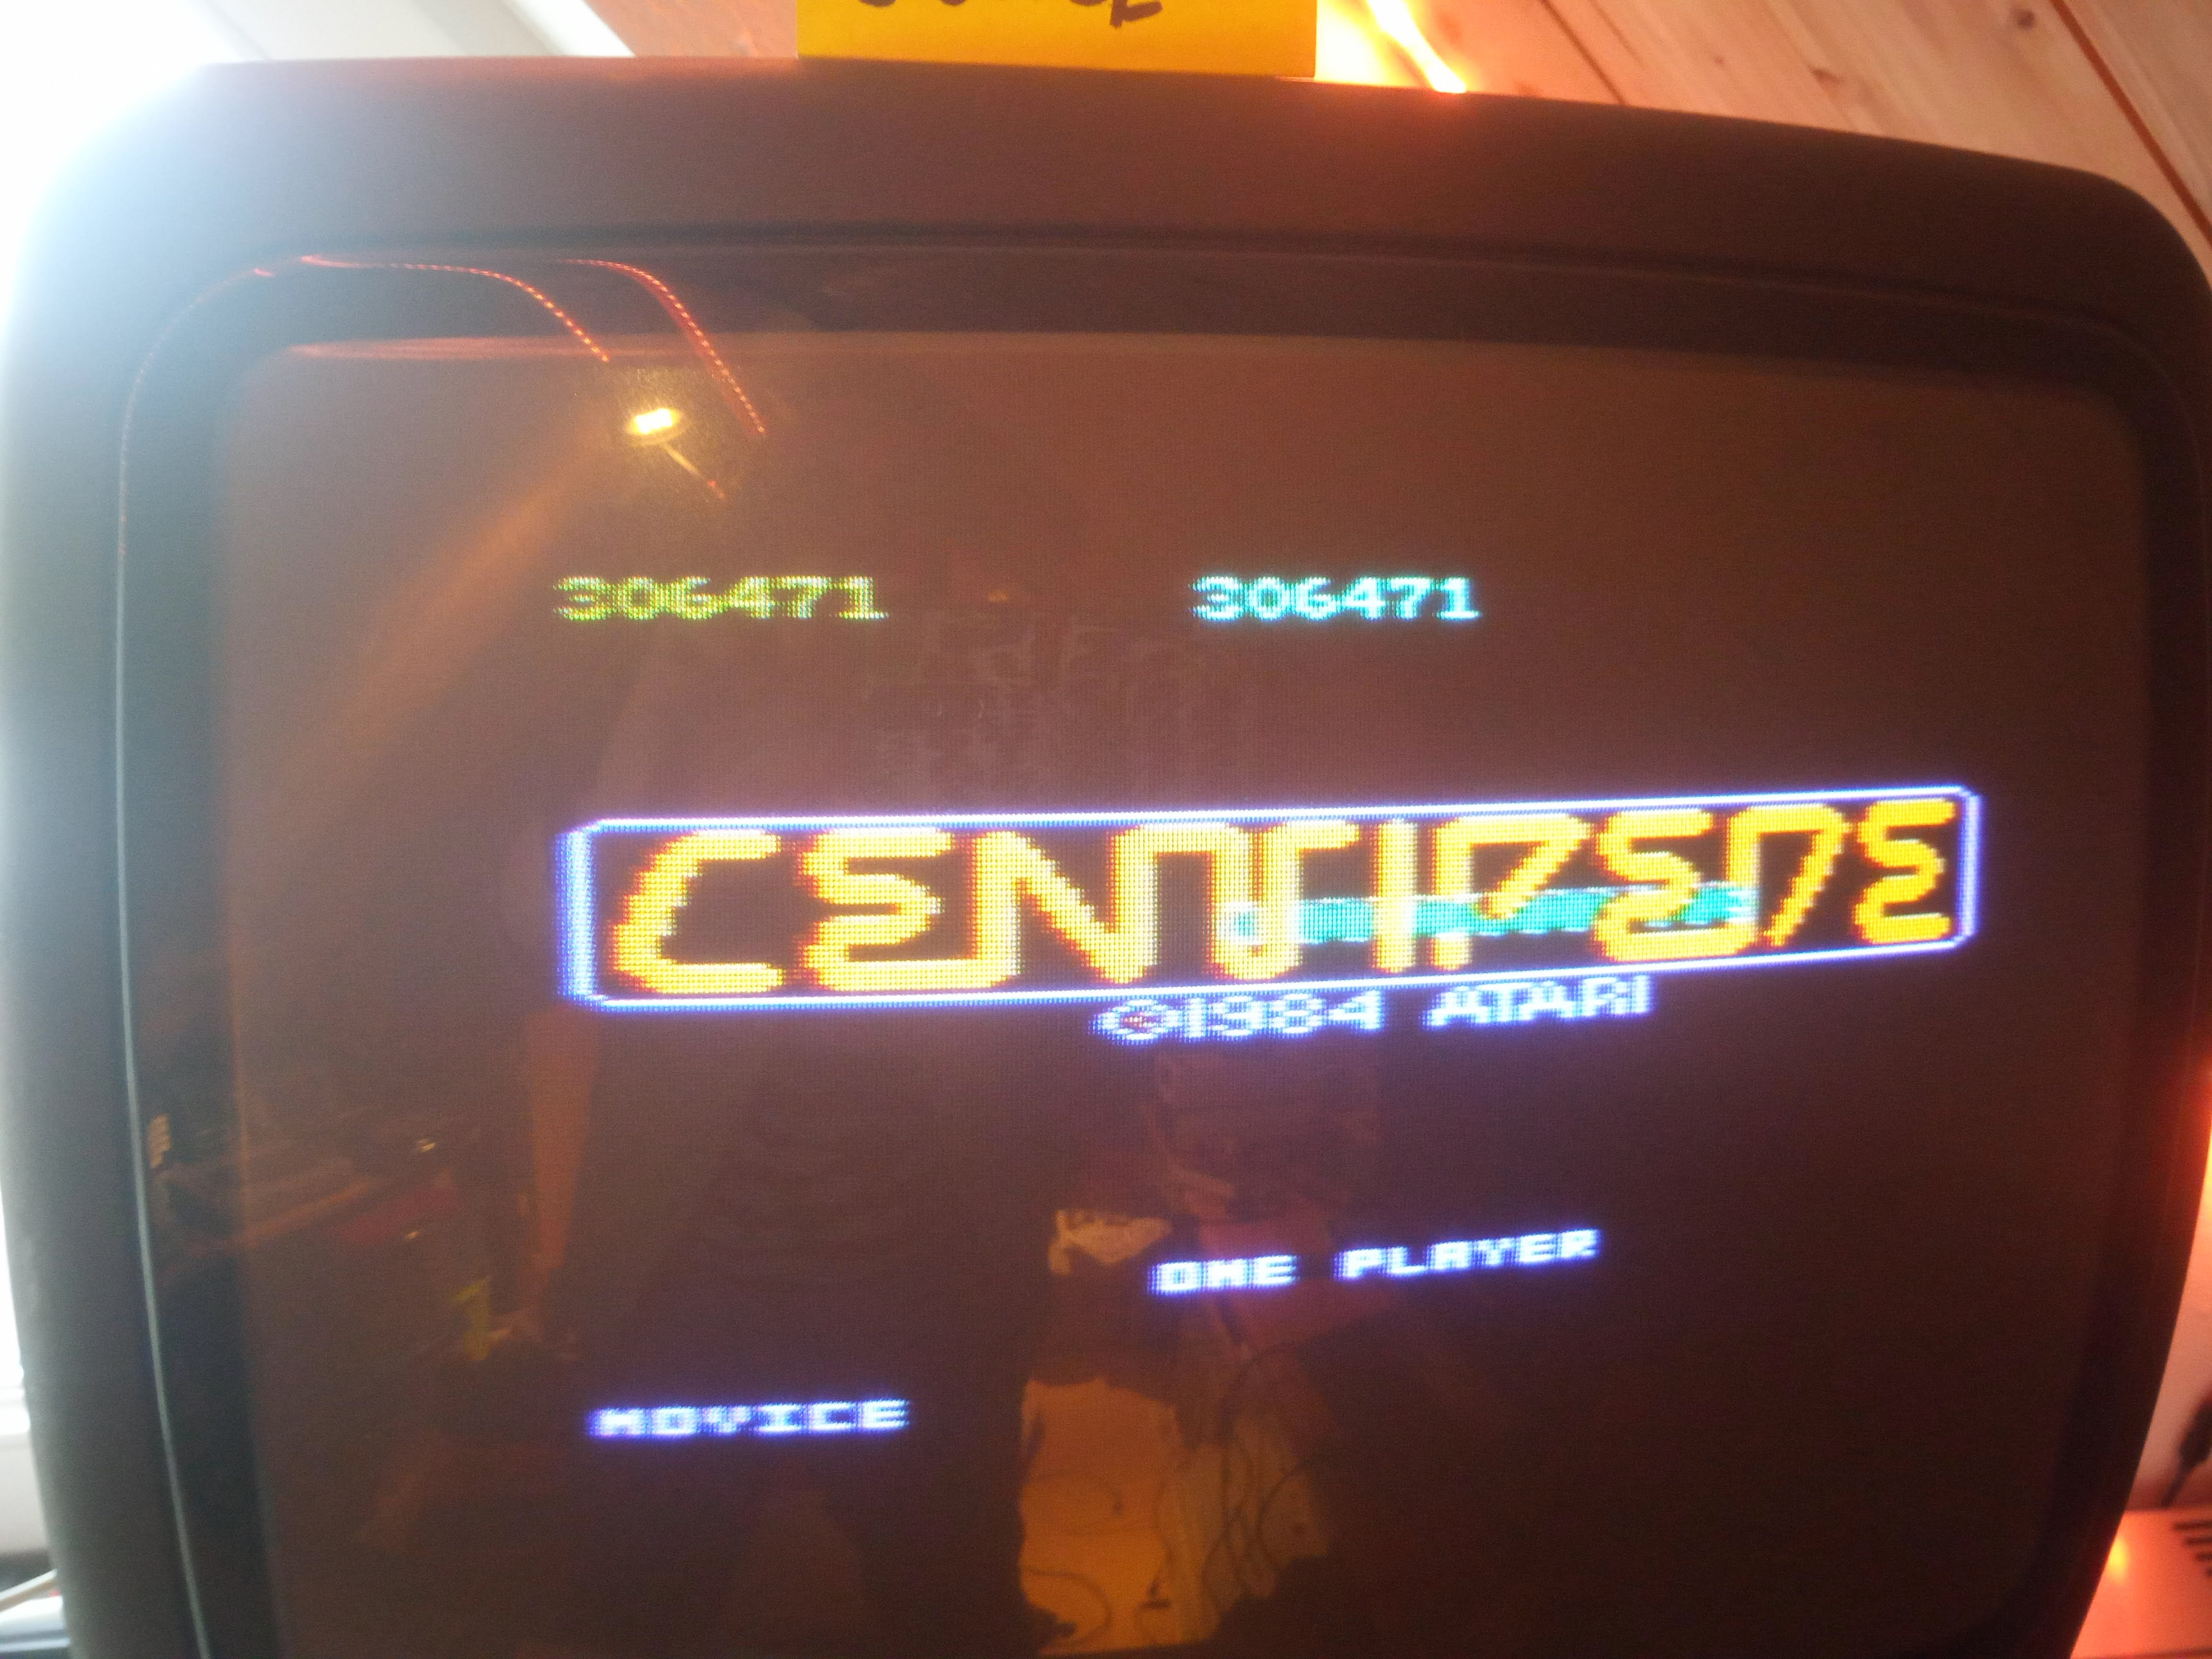 Centipede: Novice 306,471 points